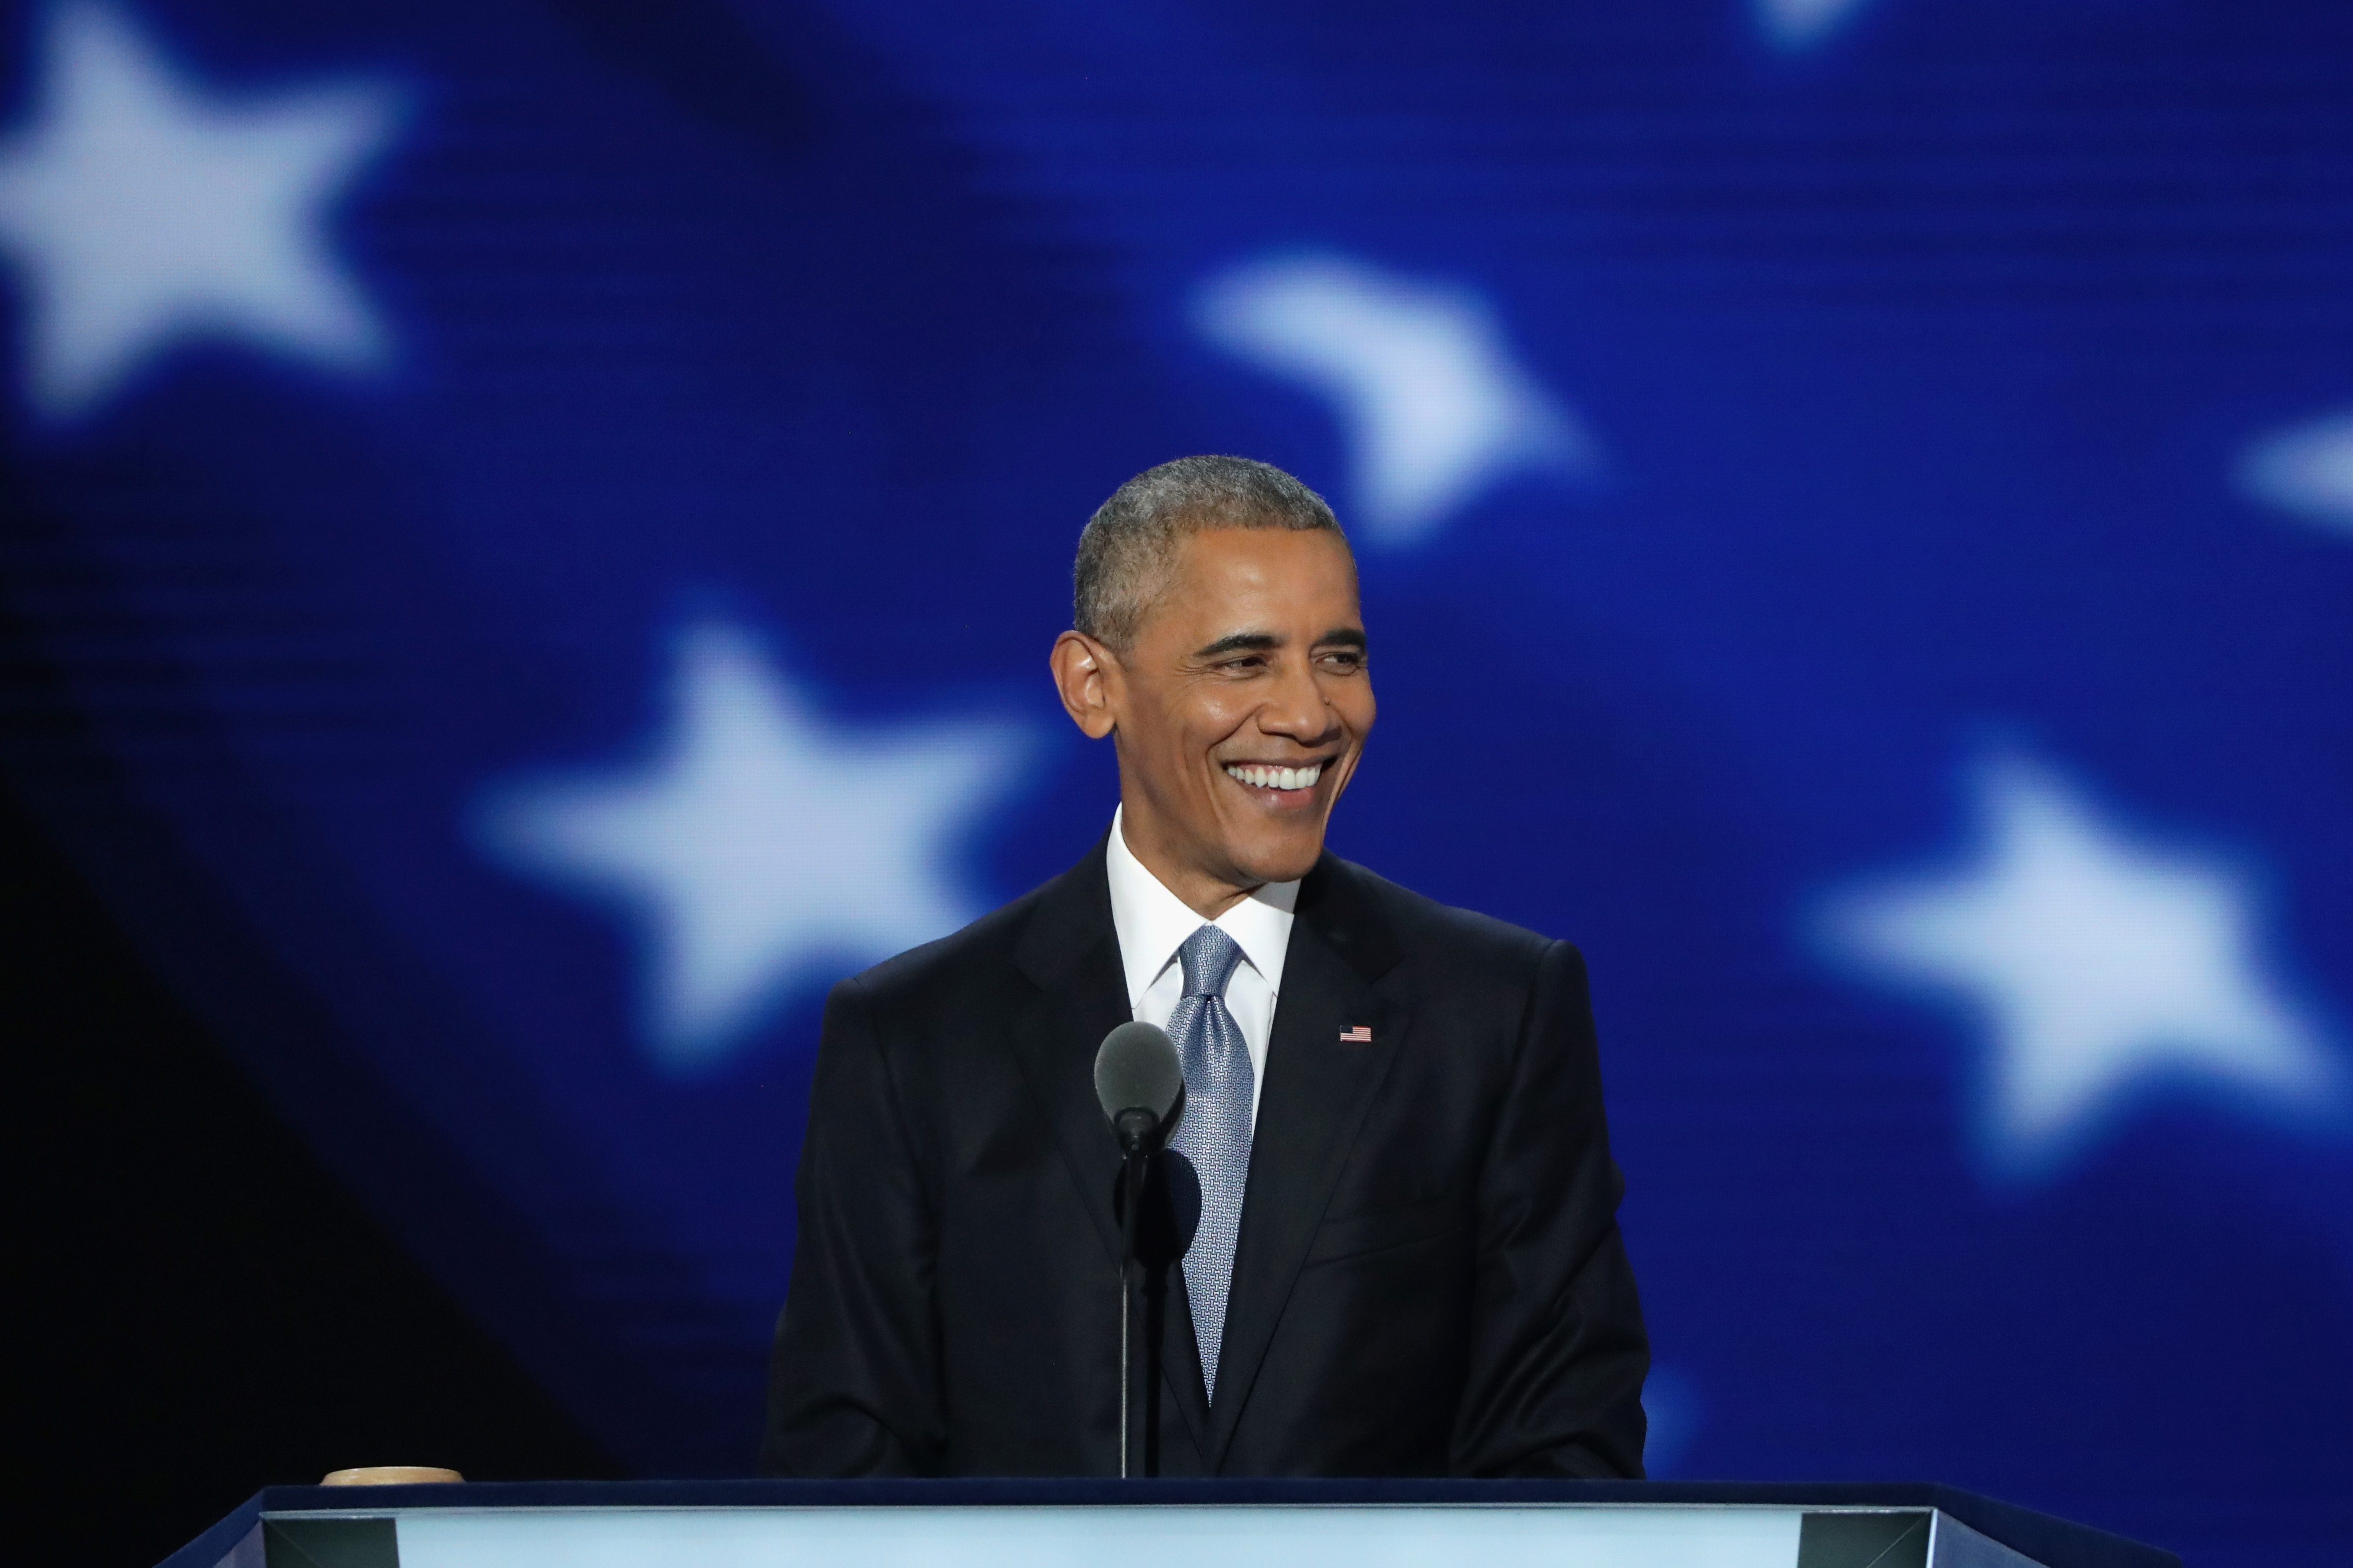 PHILADELPHIA, PA - JULY 27:  US President Barack Obama delivers remarks on the third day of the Democratic National Convention at the Wells Fargo Center, July 27, 2016 in Philadelphia, Pennsylvania. Democratic presidential candidate Hillary Clinton received the number of votes needed to secure the party's nomination. An estimated 50,000 people are expected in Philadelphia, including hundreds of protesters and members of the media. The four-day Democratic National Convention kicked off July 25.  (Photo by Alex Wong/Getty Images)